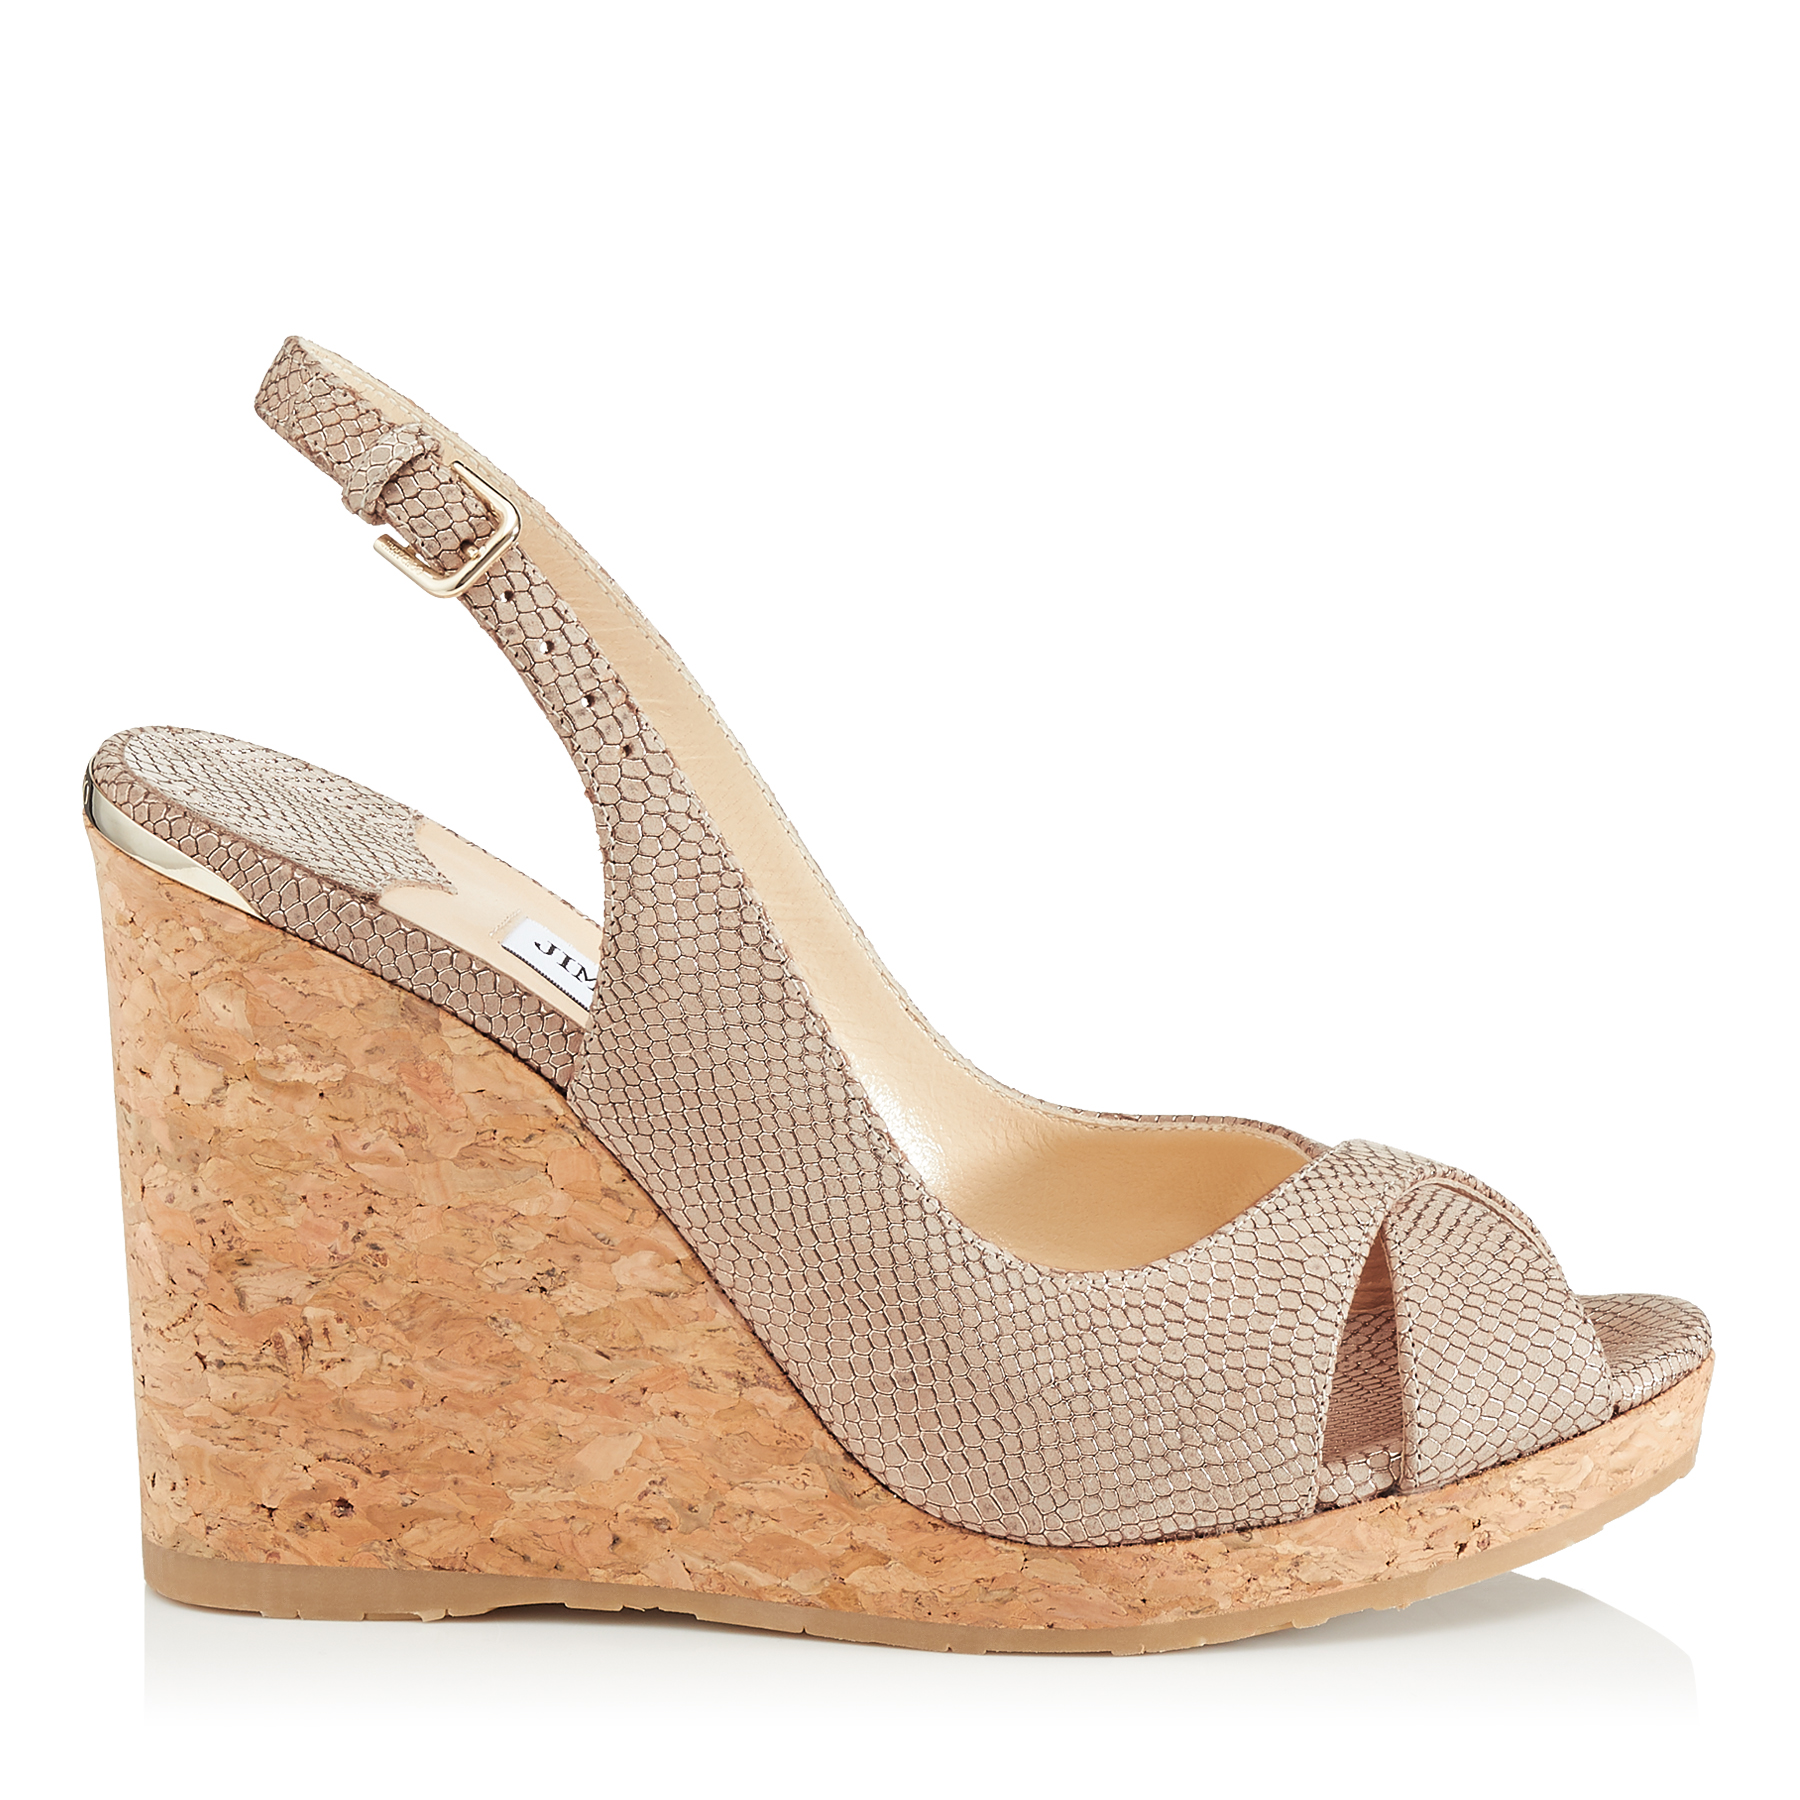 AMELY 105 Nude Printed Metallic Leather Slingback Wedges by Jimmy Choo